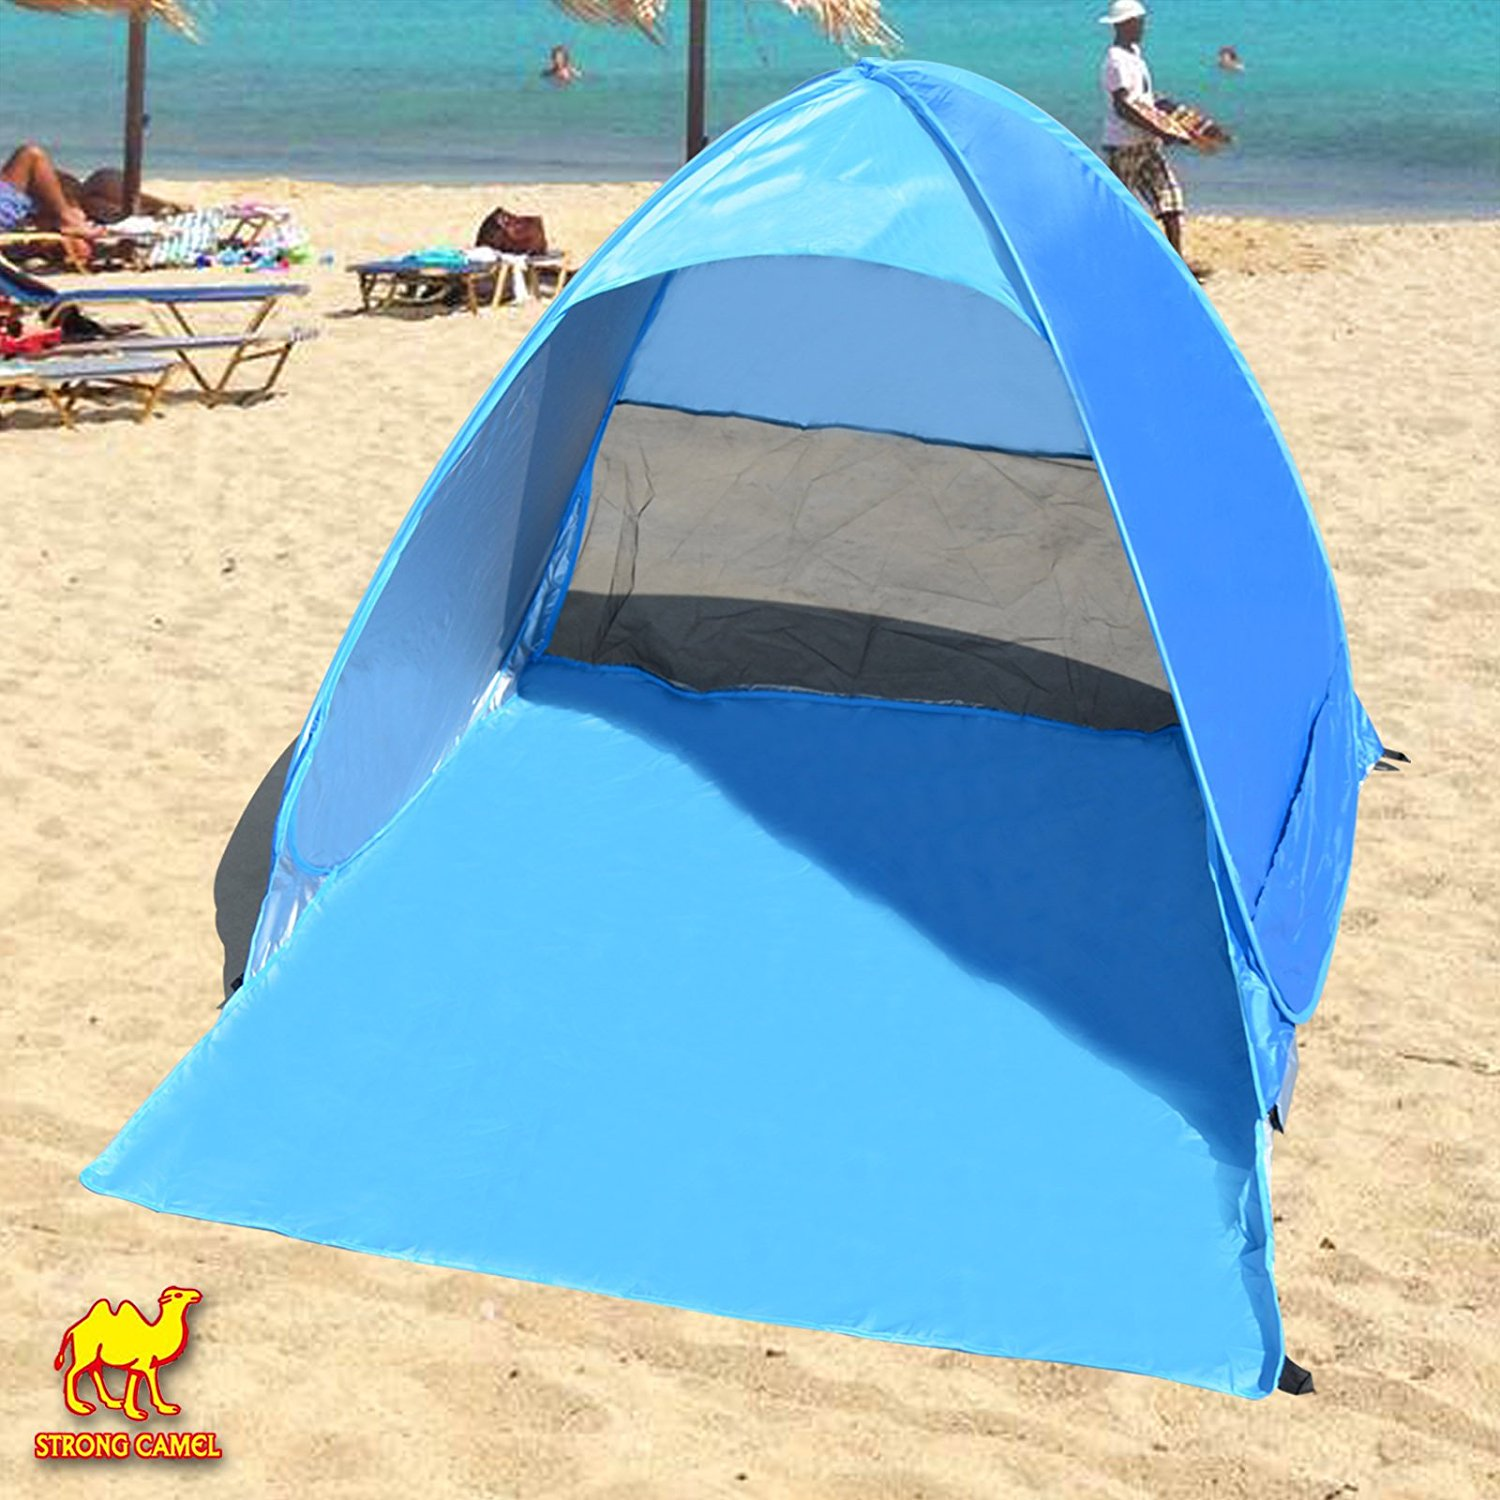 456015042c3f Get Quotations · Strong Camel Pop Up Potable Beach Shelter Tent Camping Sun  Shade Outdoor Canopy